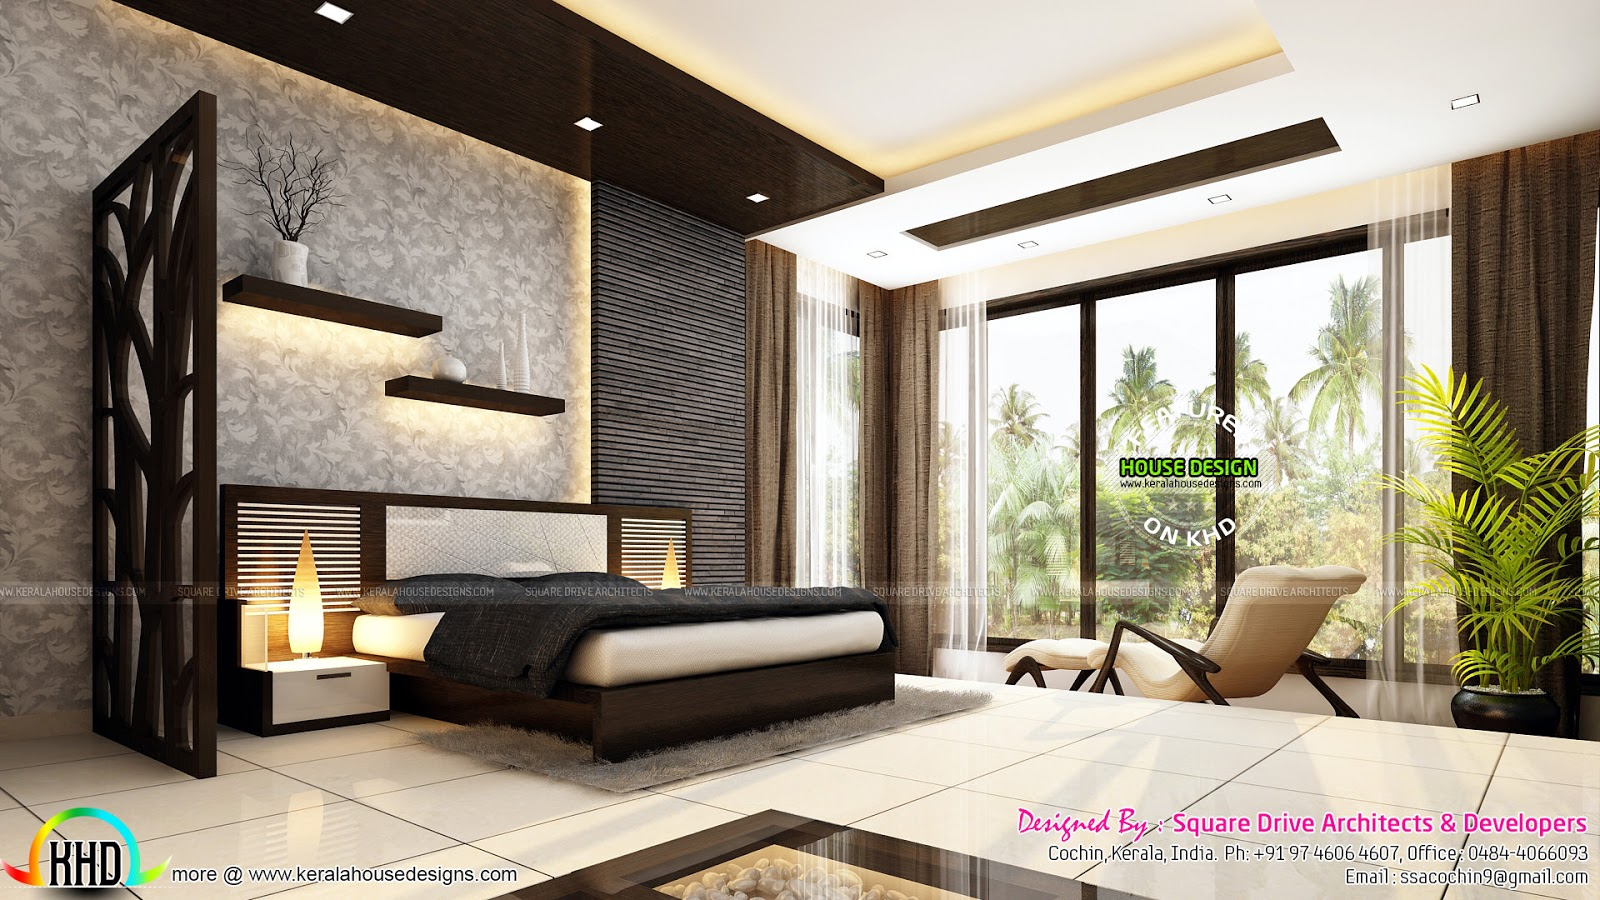 Very beautiful modern interior designs kerala home for Bedroom interior design images